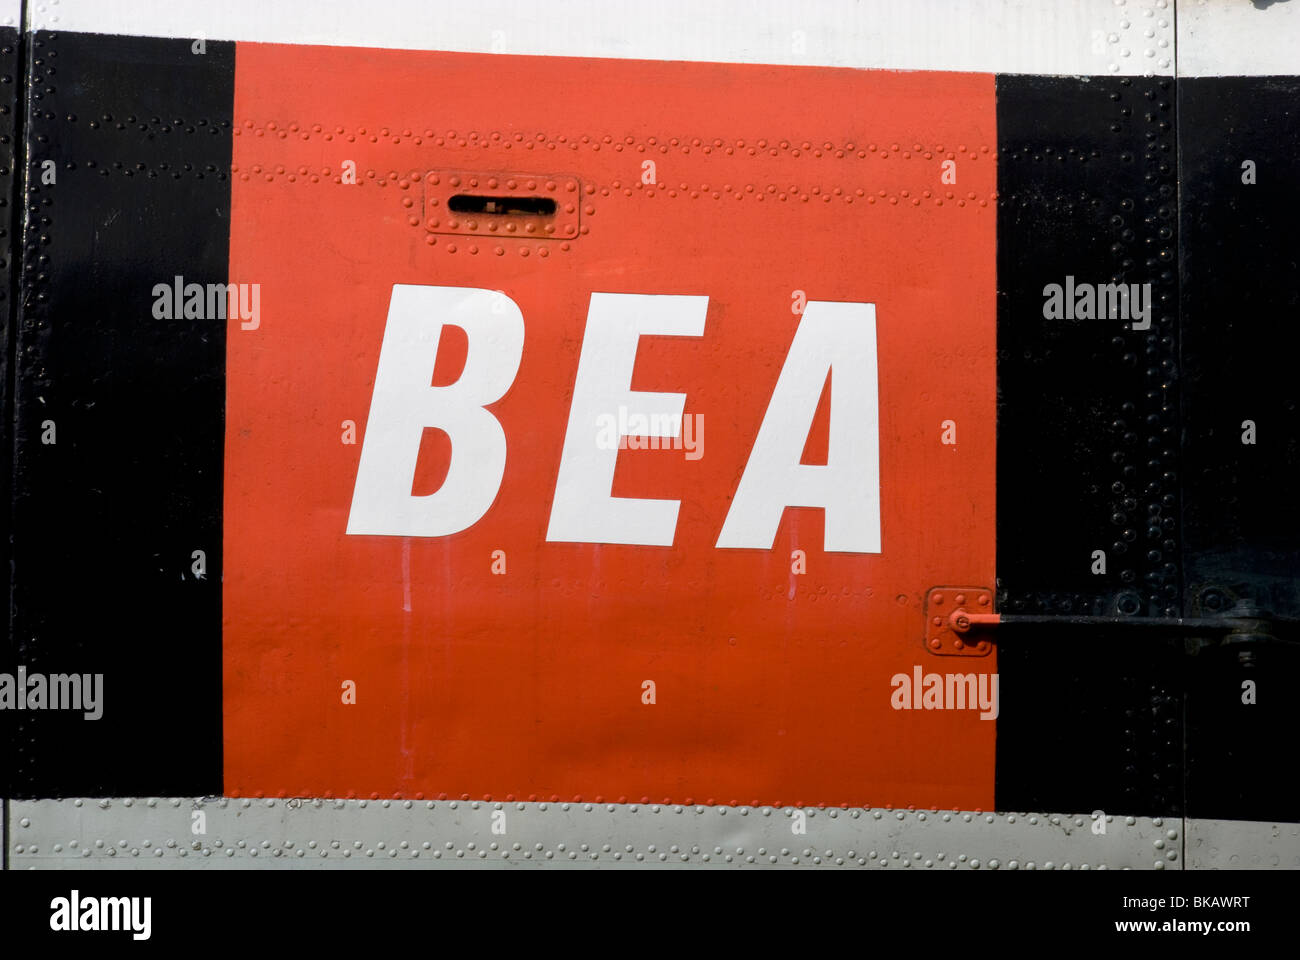 BEA Logo british european airways Stockbild